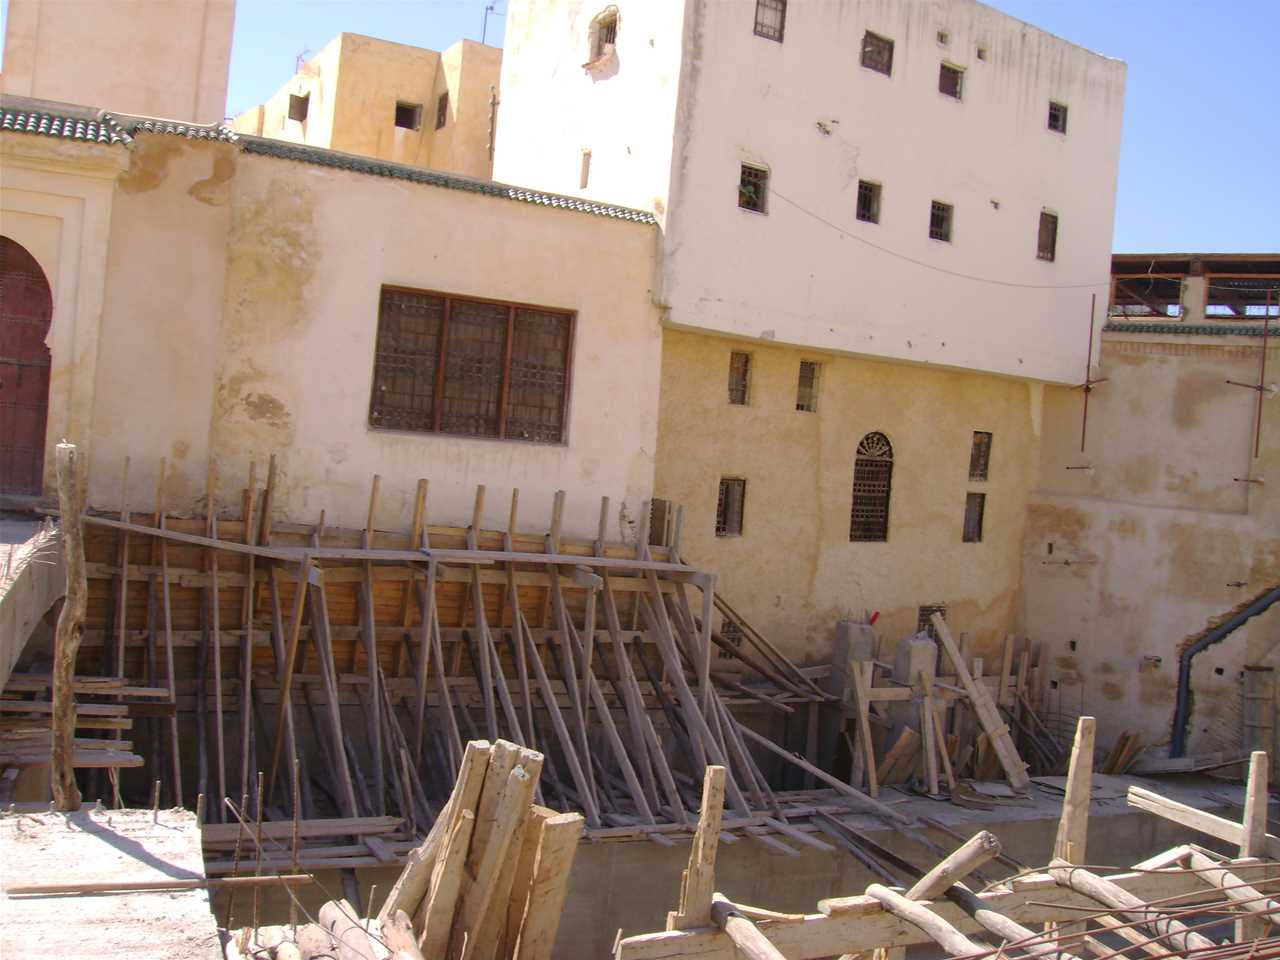 Project update September 2010 – River remediation and urban development scheme, Fez, Morocco